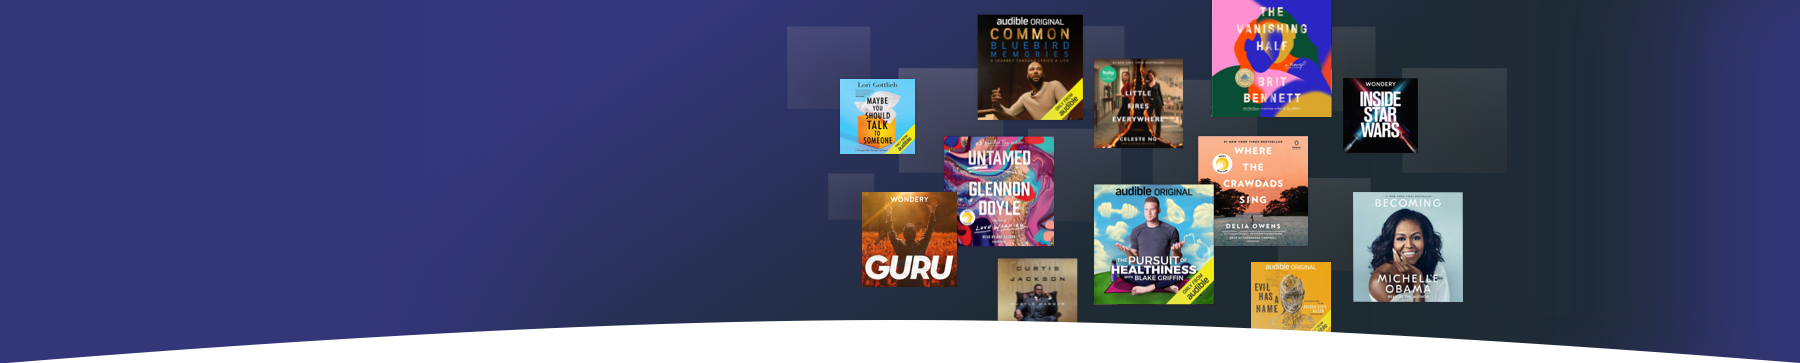 Give the gift of audible. Give them more of what they're into with an Audible gift